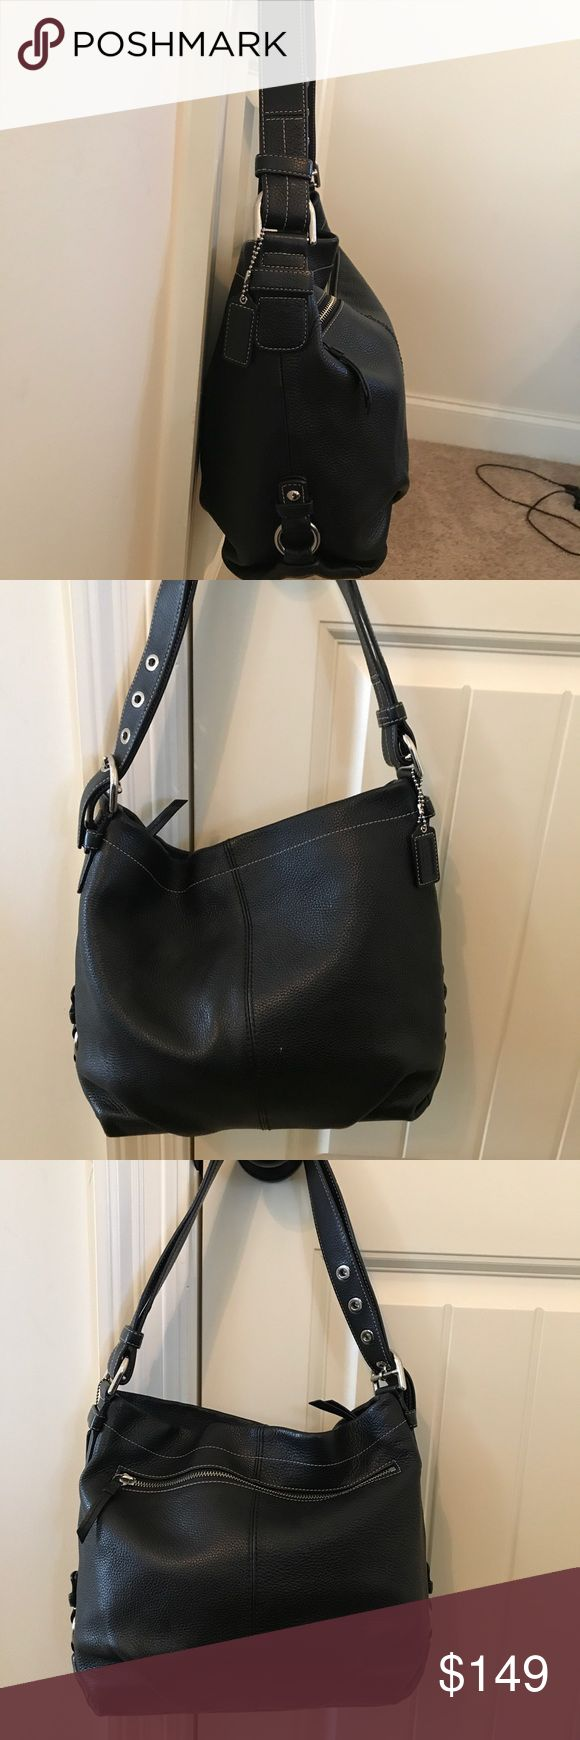 Black Coach Purse Shoulder or Crossbody Black, leather purse. Great used condition. Zippers work perfectly, no defects in the leather. There are some pen stains inside the bag. Can be worn as shoulder bag or cross body. Coach Bags Crossbody Bags